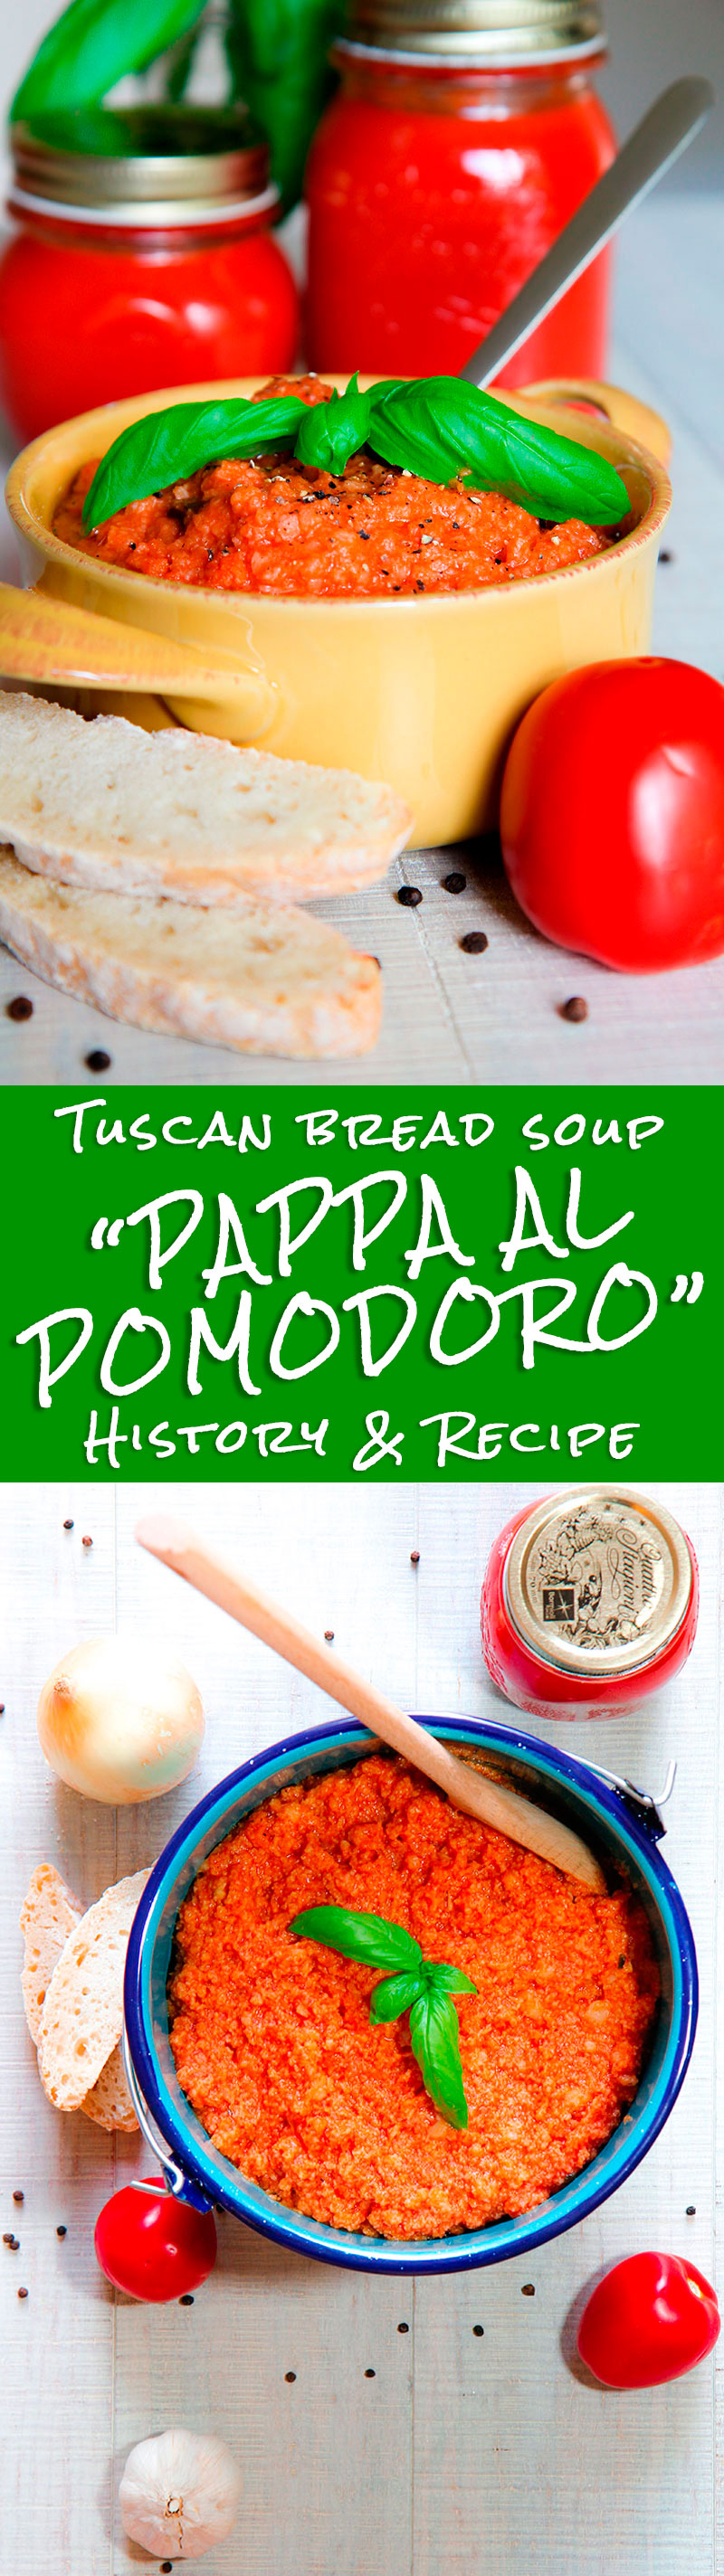 PAPPA AL POMODORO HISTORY AND RECIPE - Tuscan tomato and bread soup